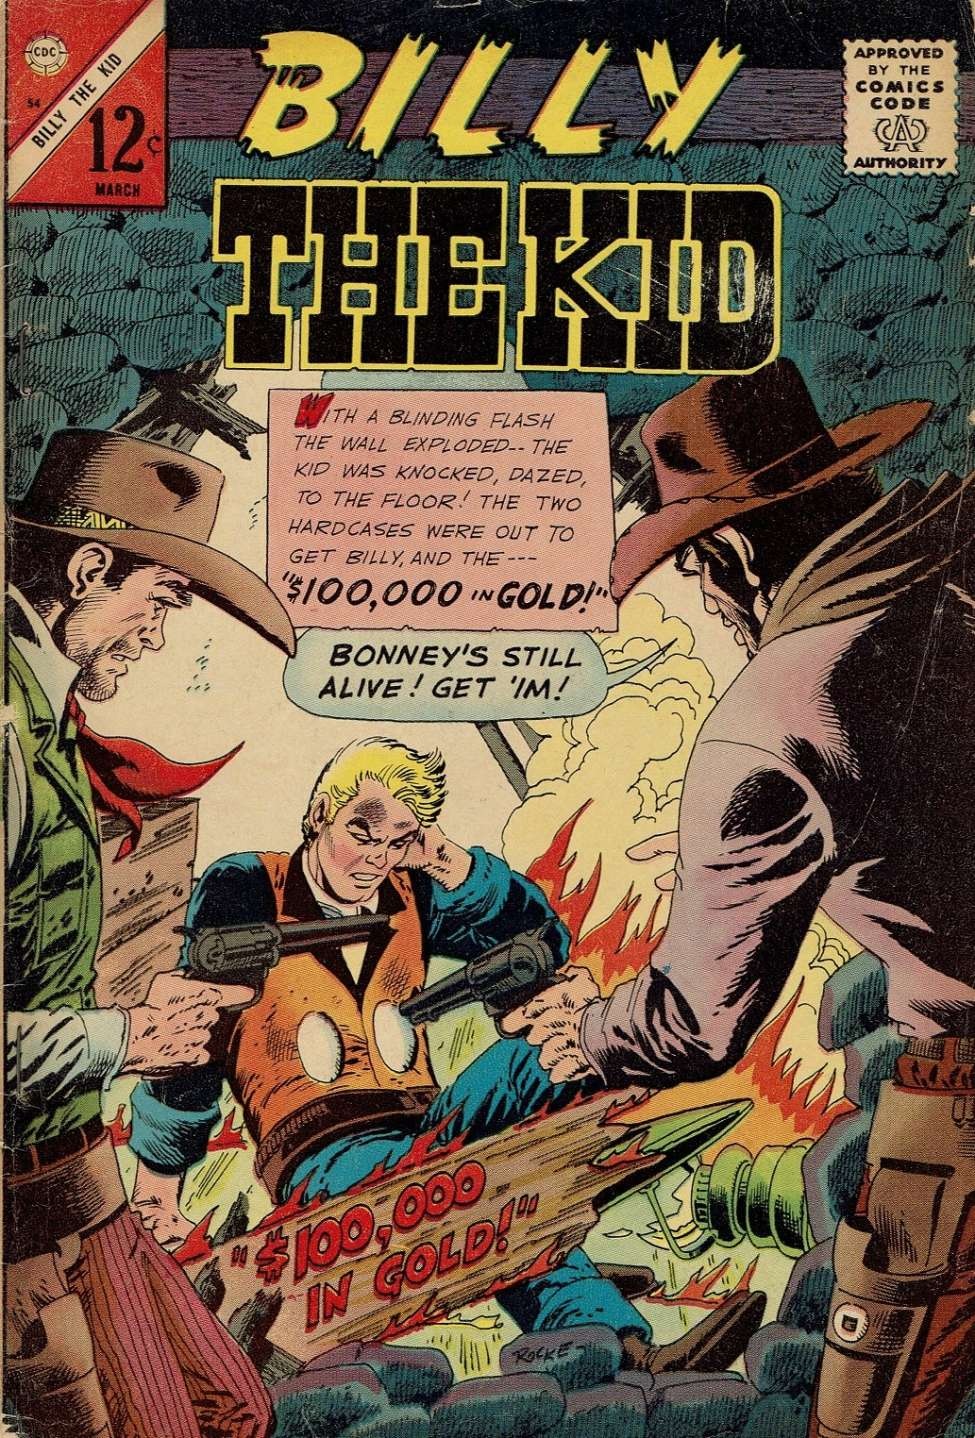 Comic Book Cover For Billy the Kid #54